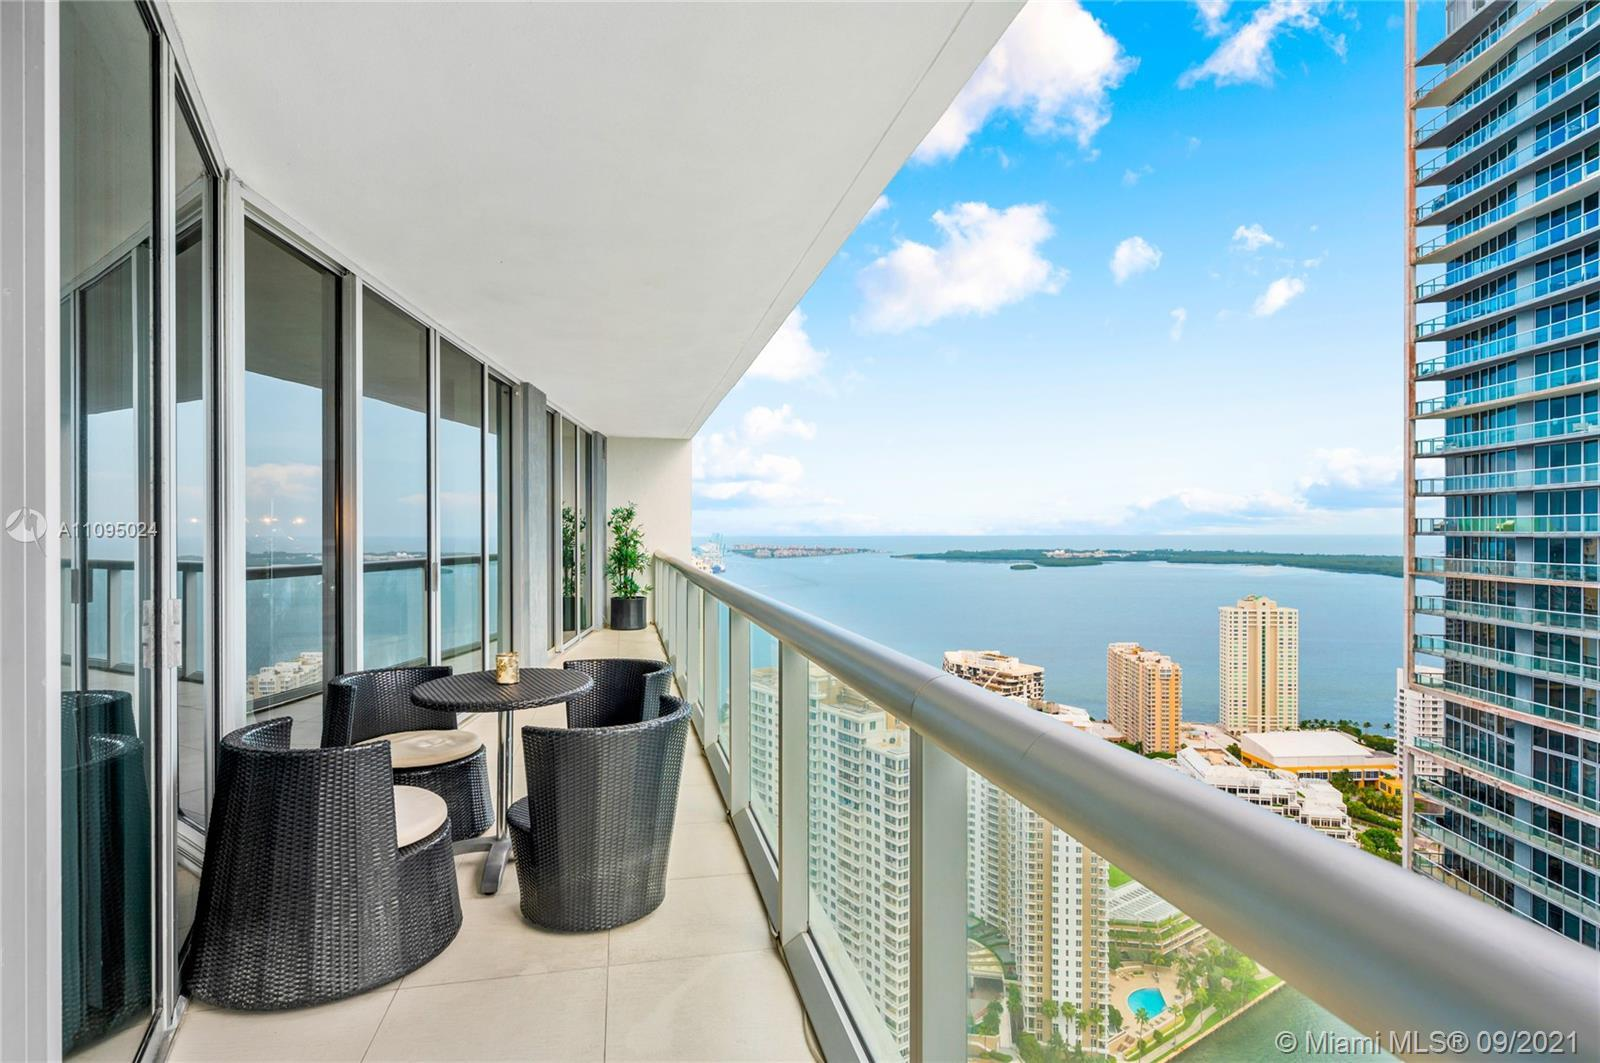 Breathtaking Bay & Pool Views 2 Beds / 2 Baths + Den/Office Modern Condo with private balcony in ICO